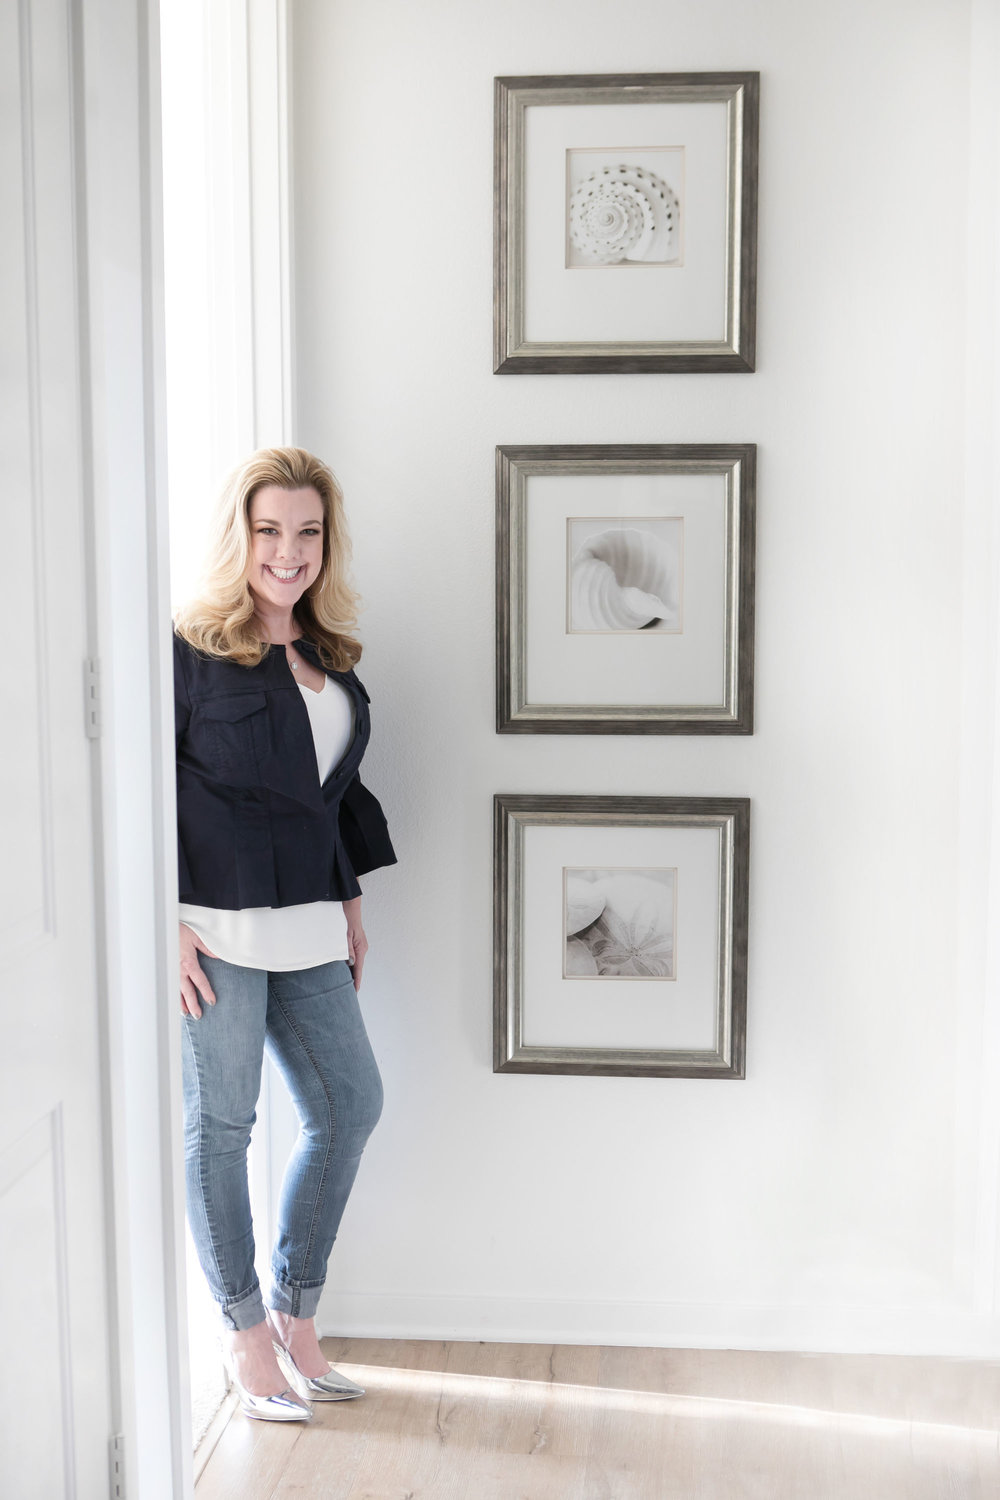 This is a photo of Audra Wrightson, who is an interior designer in Orange County, CA. She is wearing metallic silver shoes and cuffed jeans, standing leisurely by a clean white design with three chrome frames hanging behind her with photos of white beach shells.